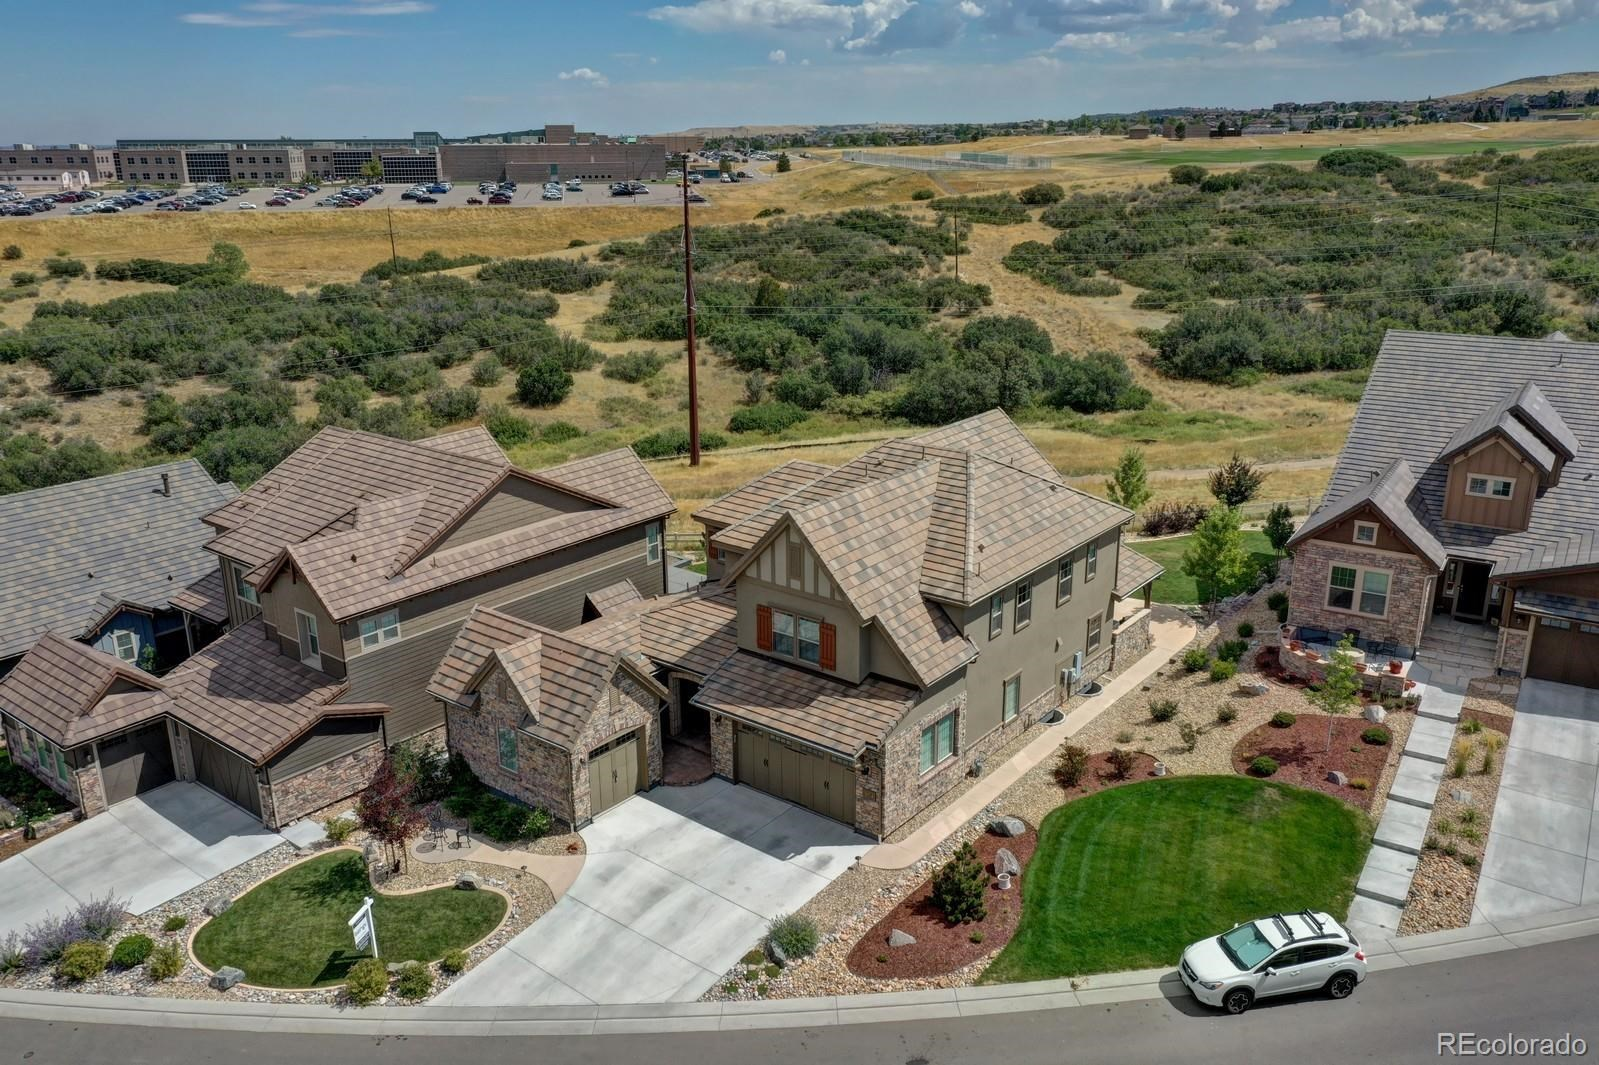 MLS# 5689224 - 2 - 10754 Greycliffe Drive, Highlands Ranch, CO 80126